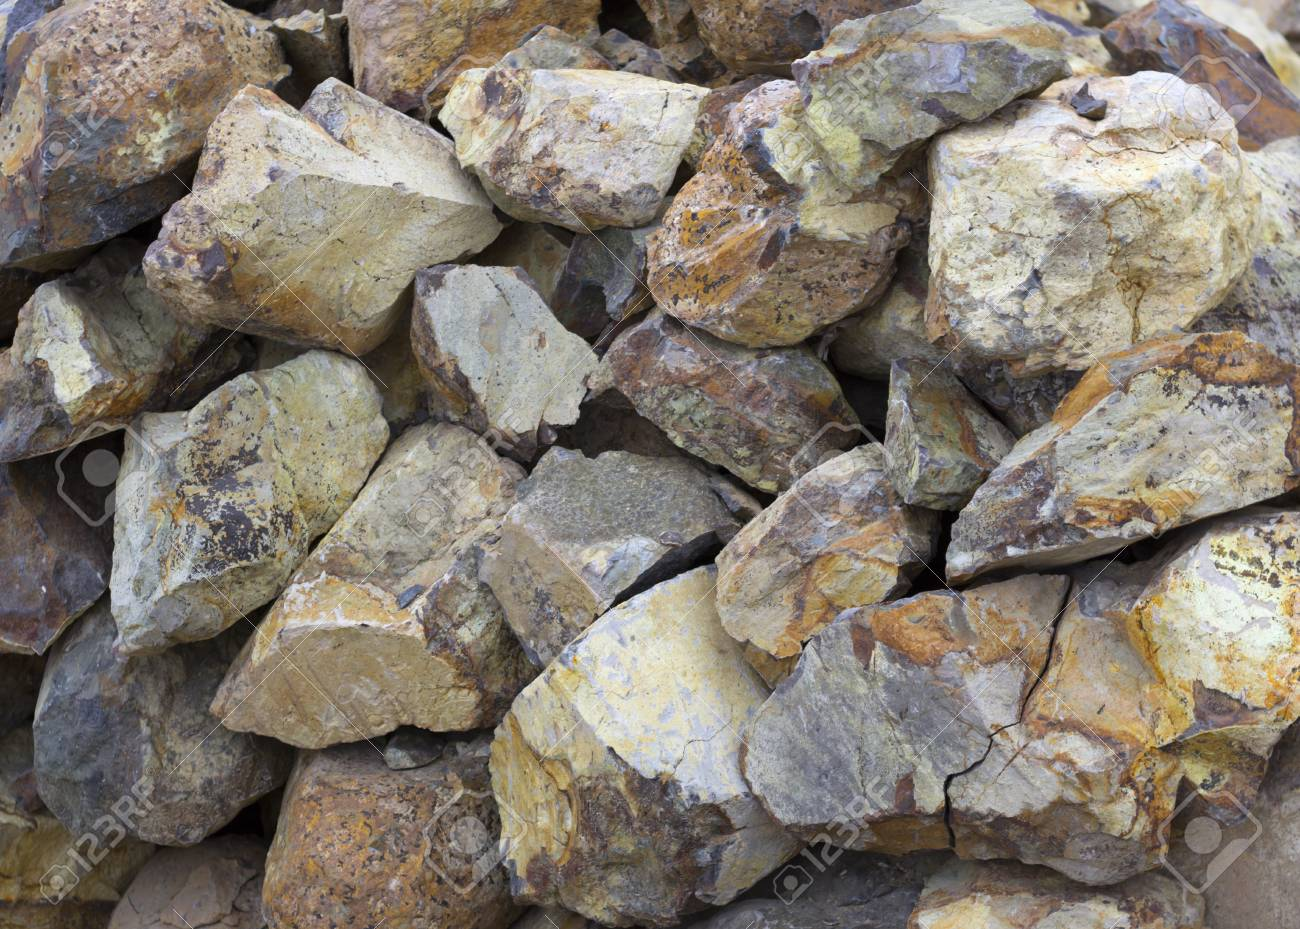 Large stones for use in landscape design when mounting alpine large stones for use in landscape design when mounting alpine slides and japanese stone gardens workwithnaturefo